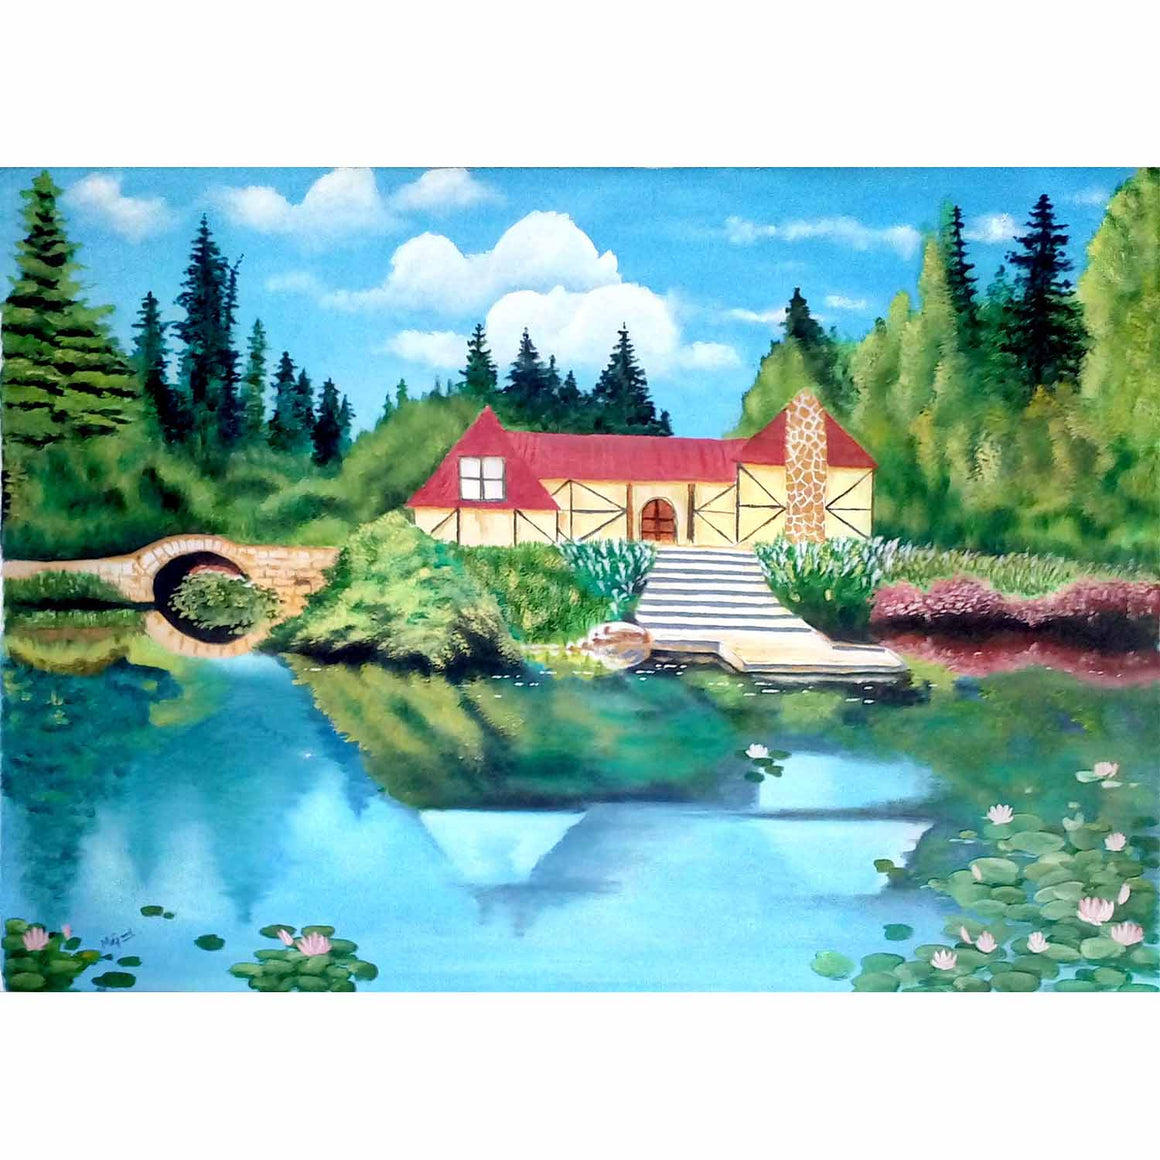 A Cottage beside a Pond